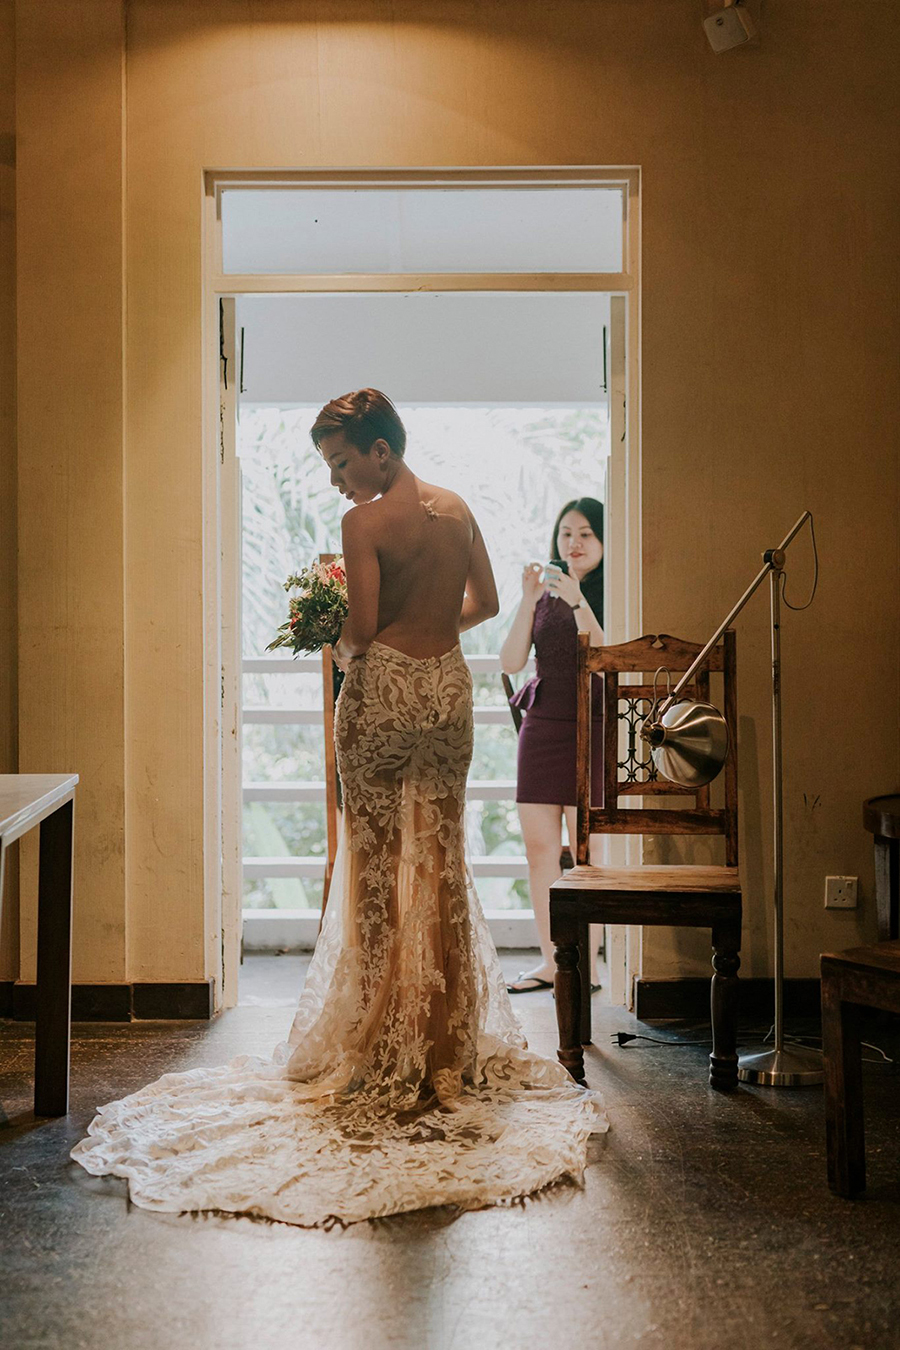 The wedding scoop today she shares how she saved thousands on her wedding decor and planned her wedding with help from taobao and daiso for under 25k junglespirit Images